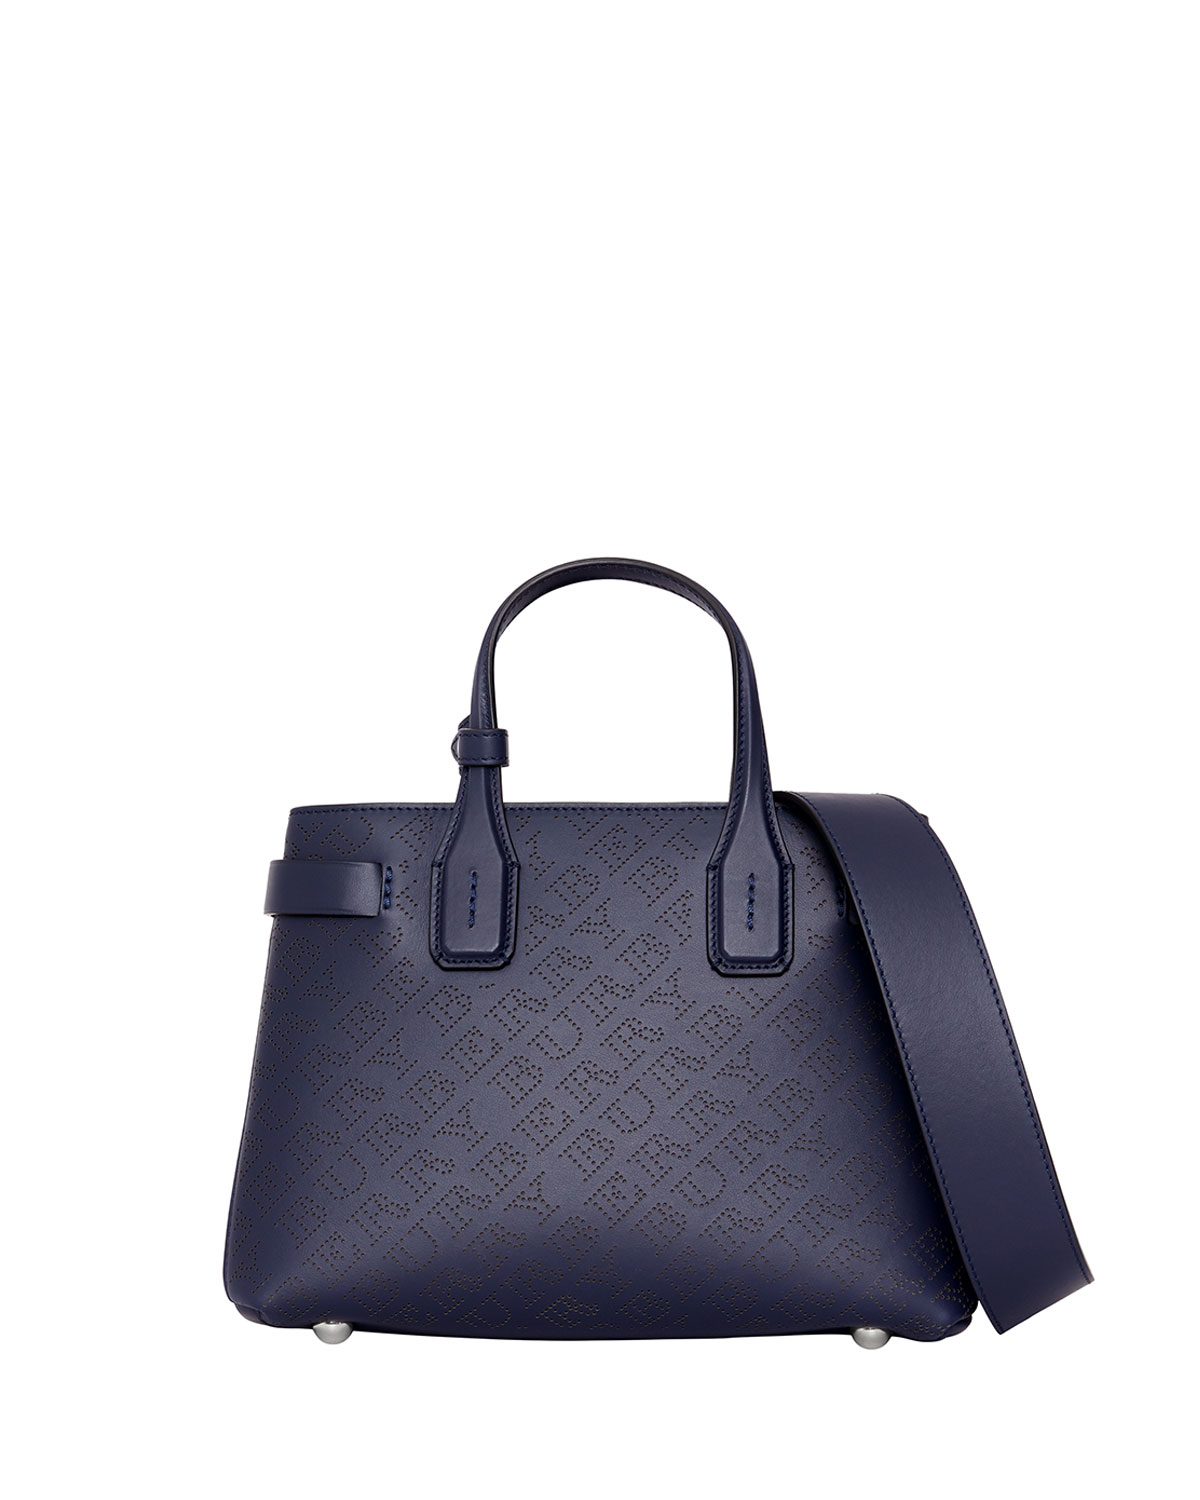 3a8017578c0f Burberry Banner Small Perforated Tote Bag Regency Blue Neiman Marcus